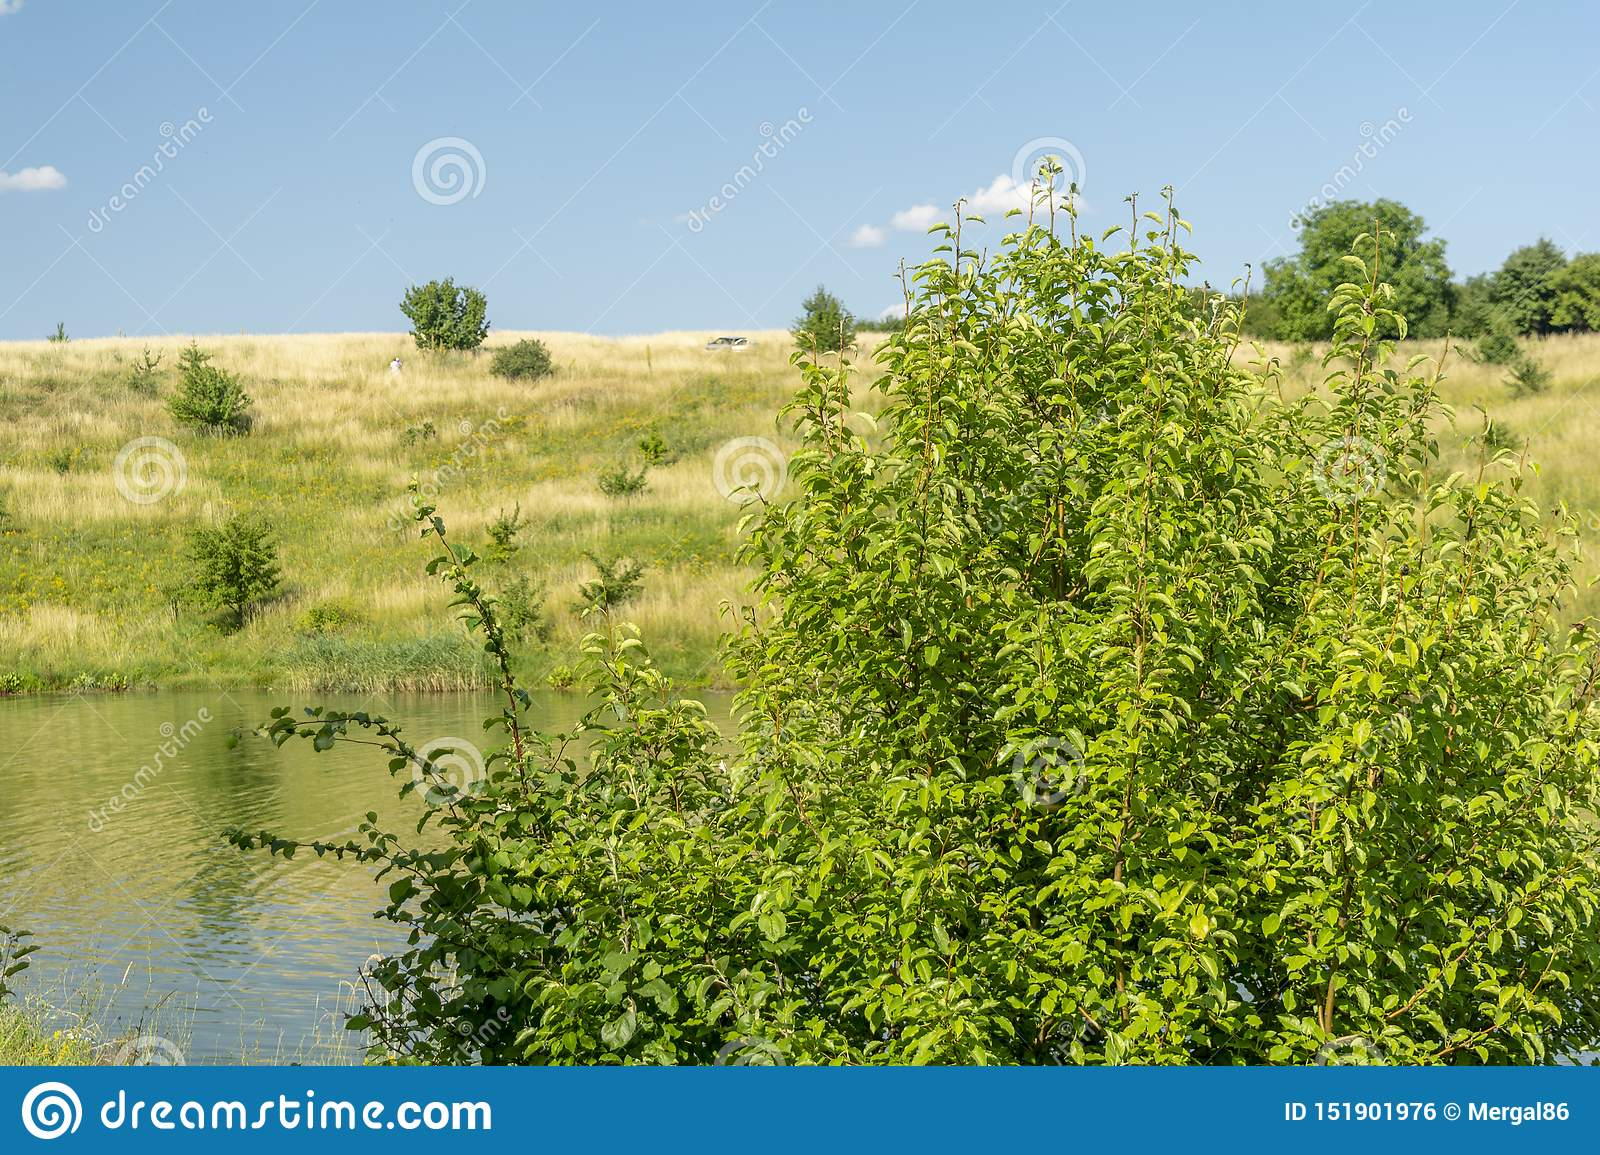 Beautiful view of river, green trees, hills and blue cloudy sky. Summer landscape